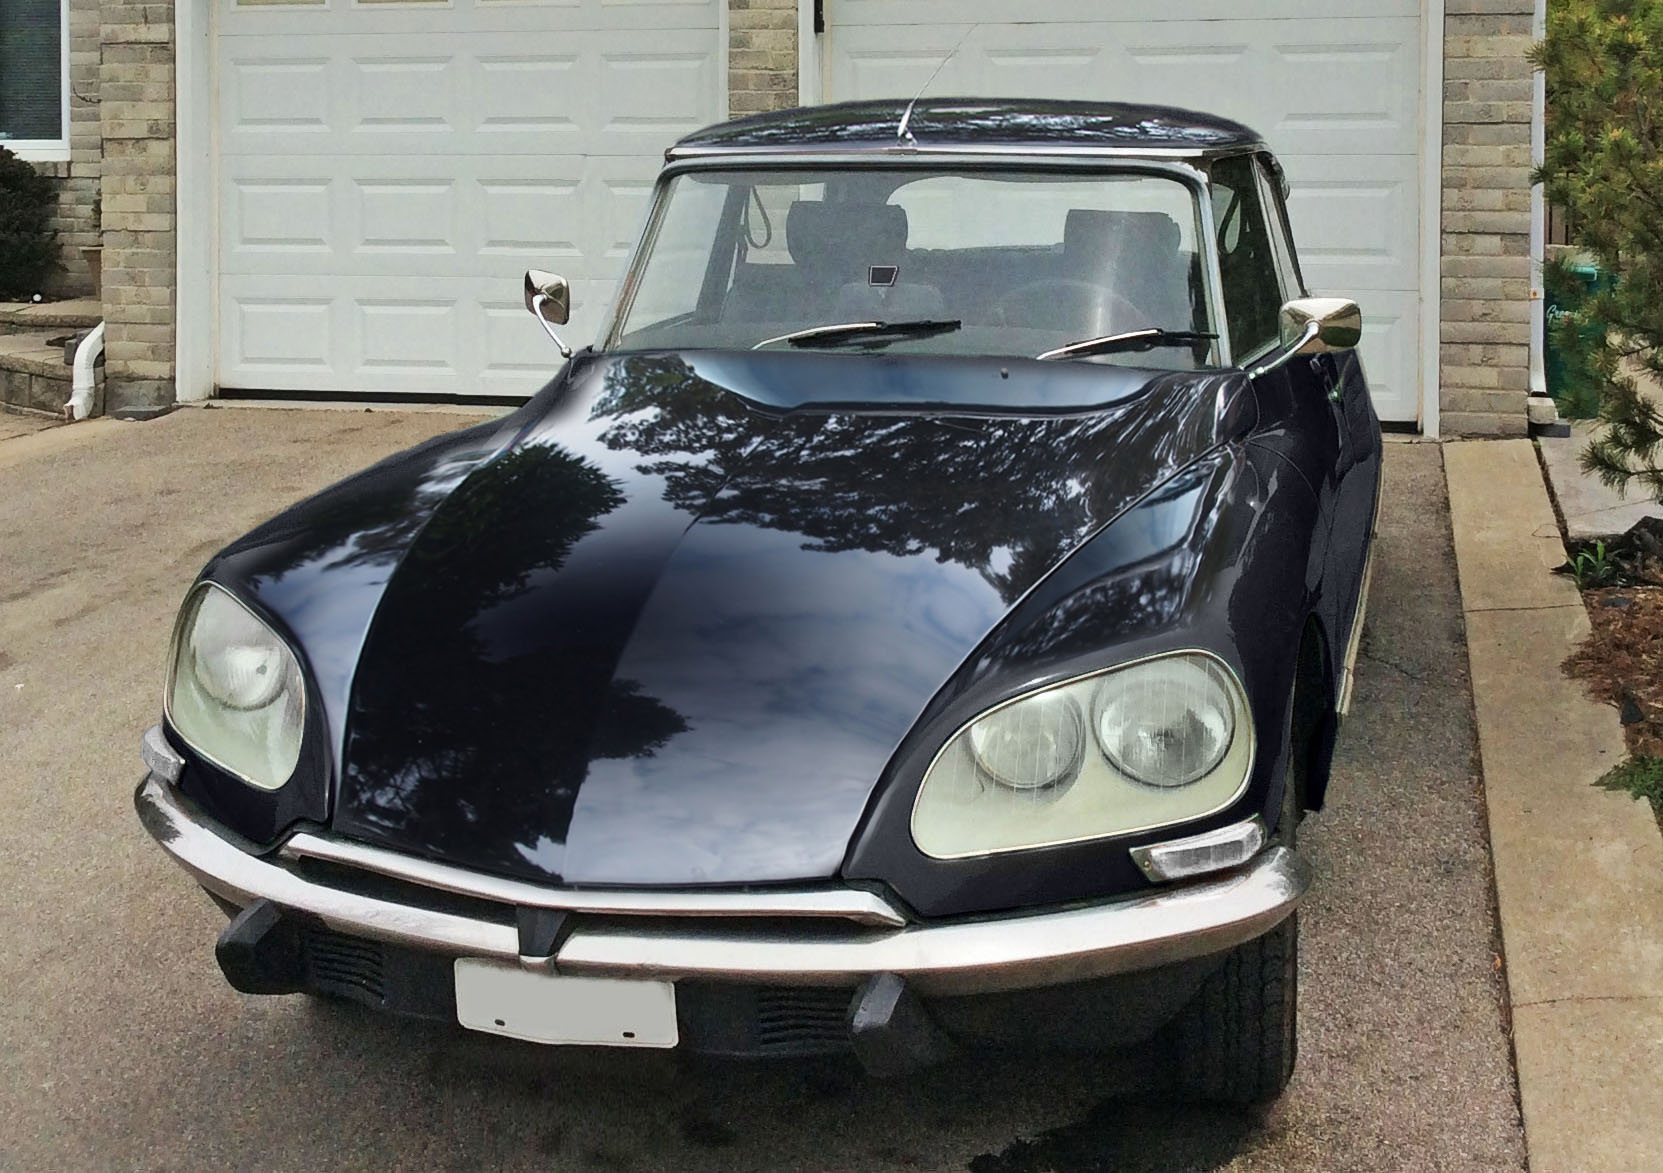 Citroen DS23 EFi Pallas 1974 - PS various and SHINY black.jpg